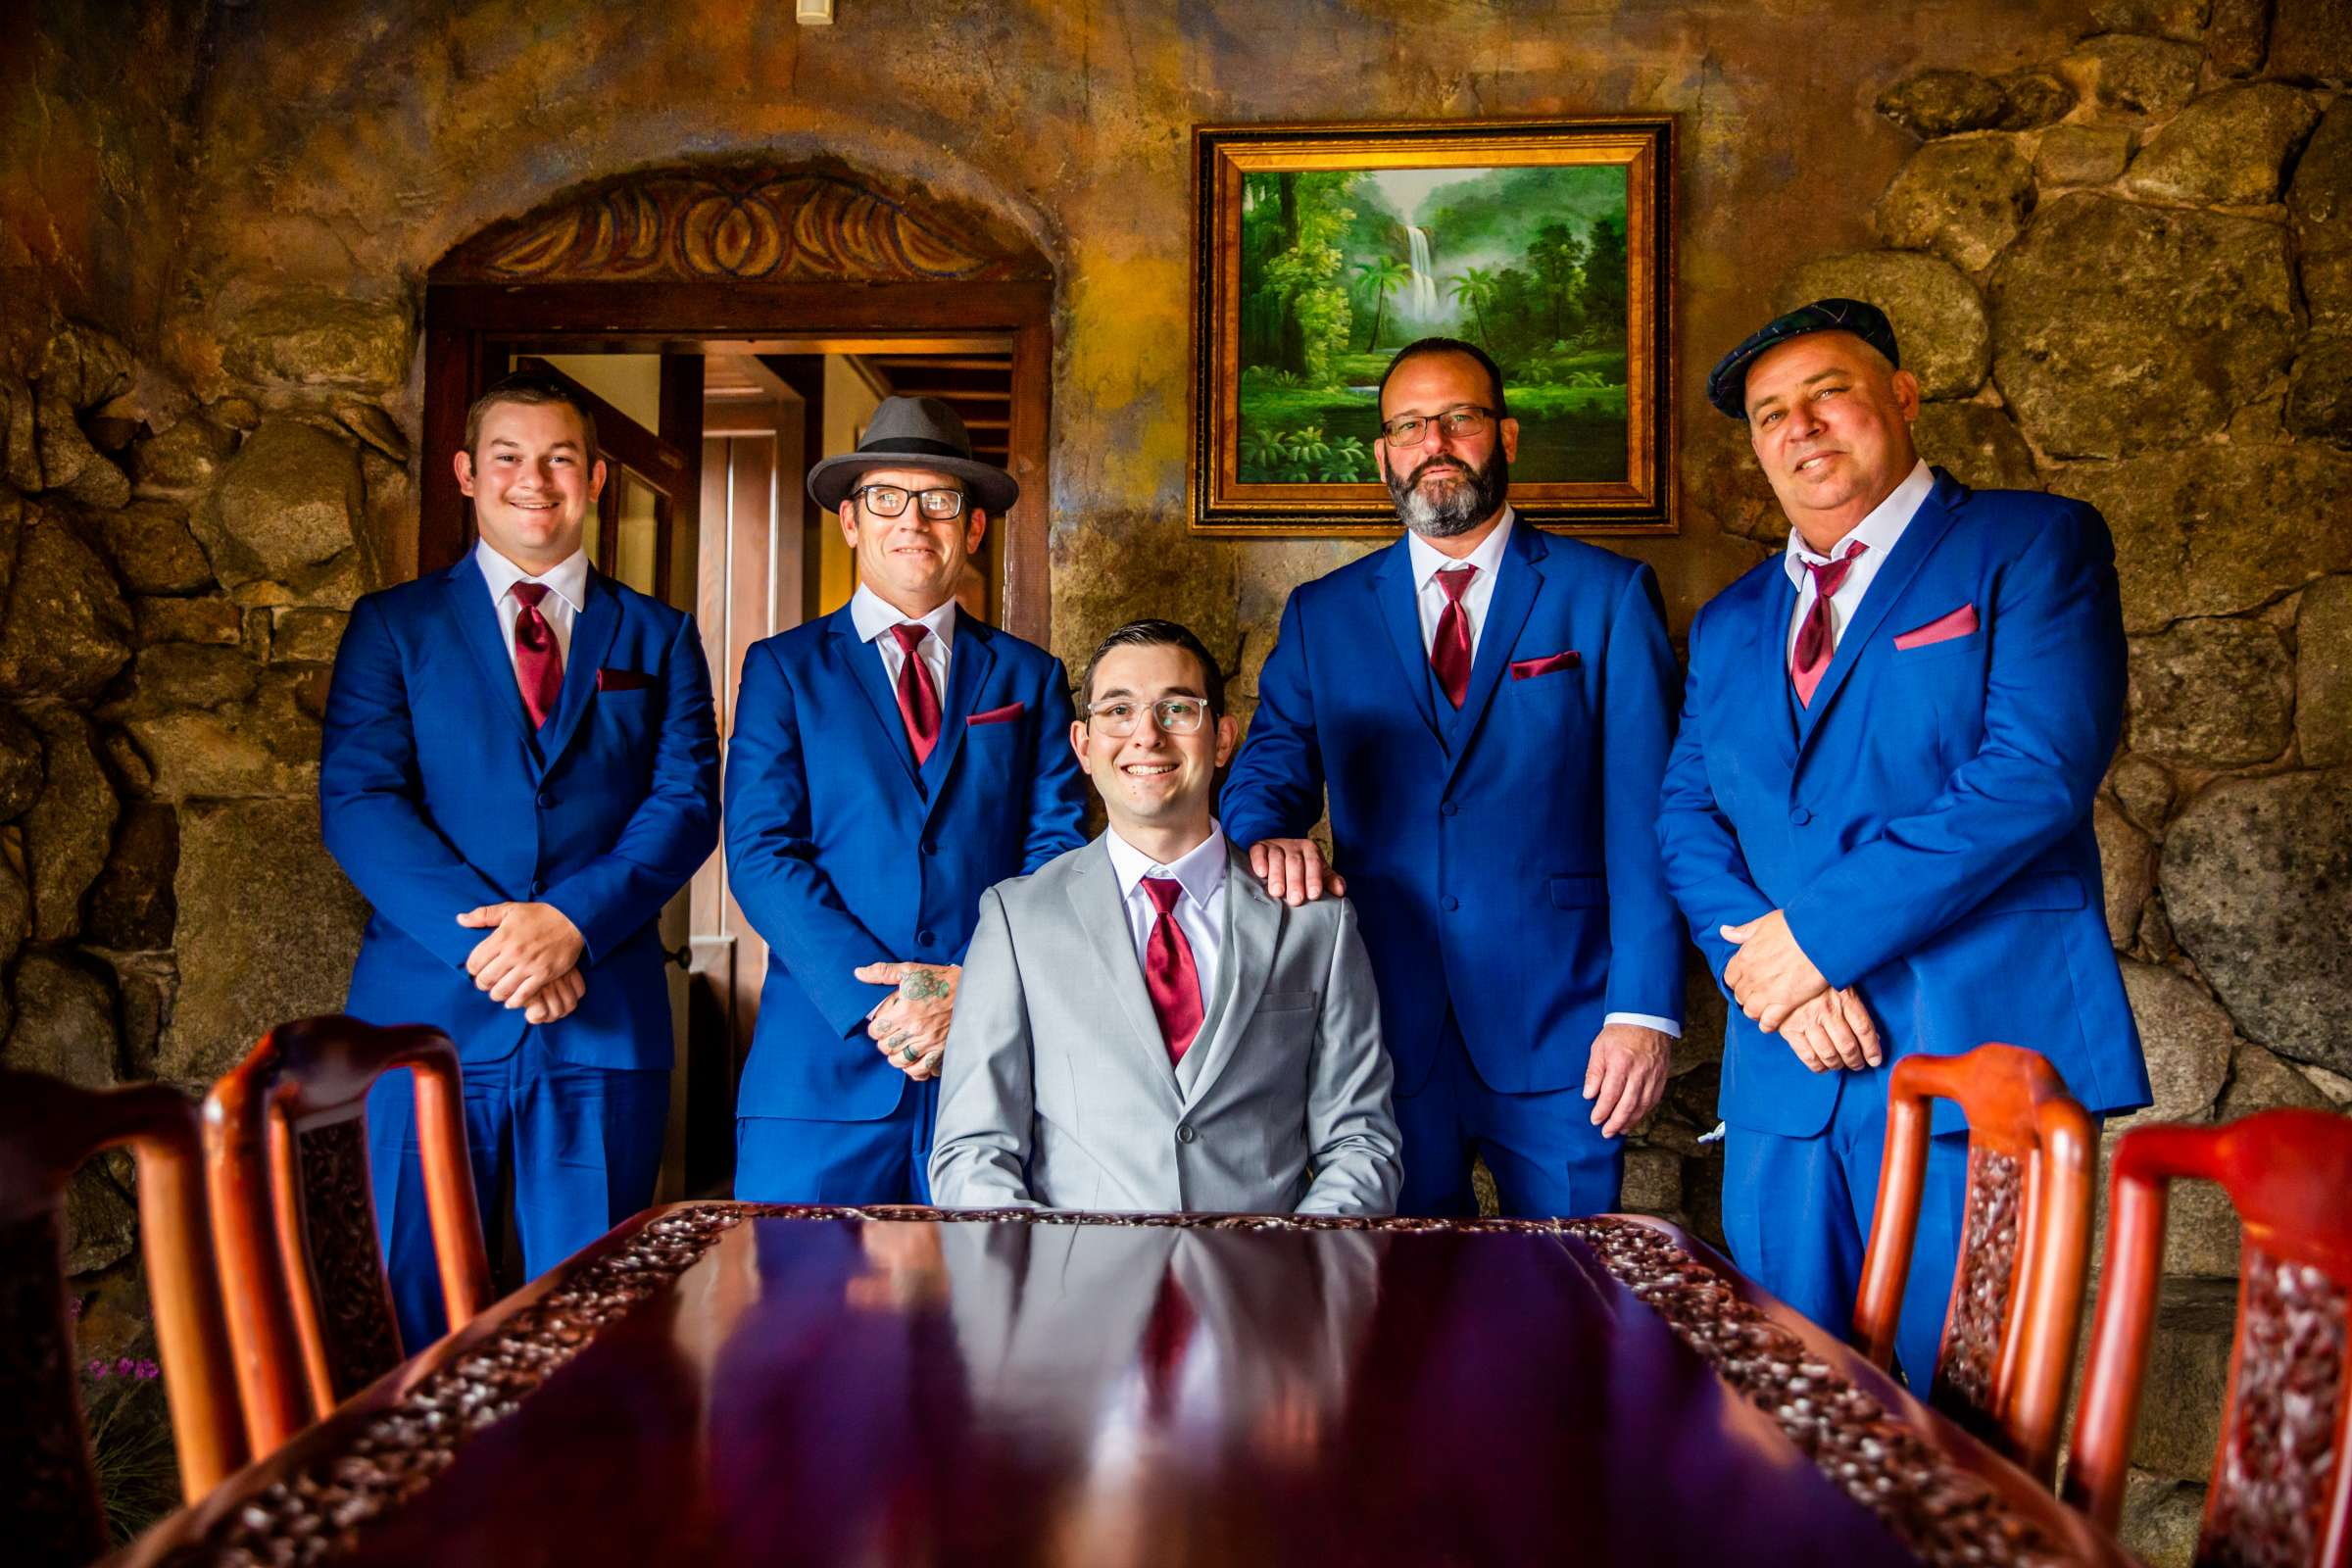 Mt Woodson Castle Wedding, Valerie and Ian Wedding Photo #46 by True Photography